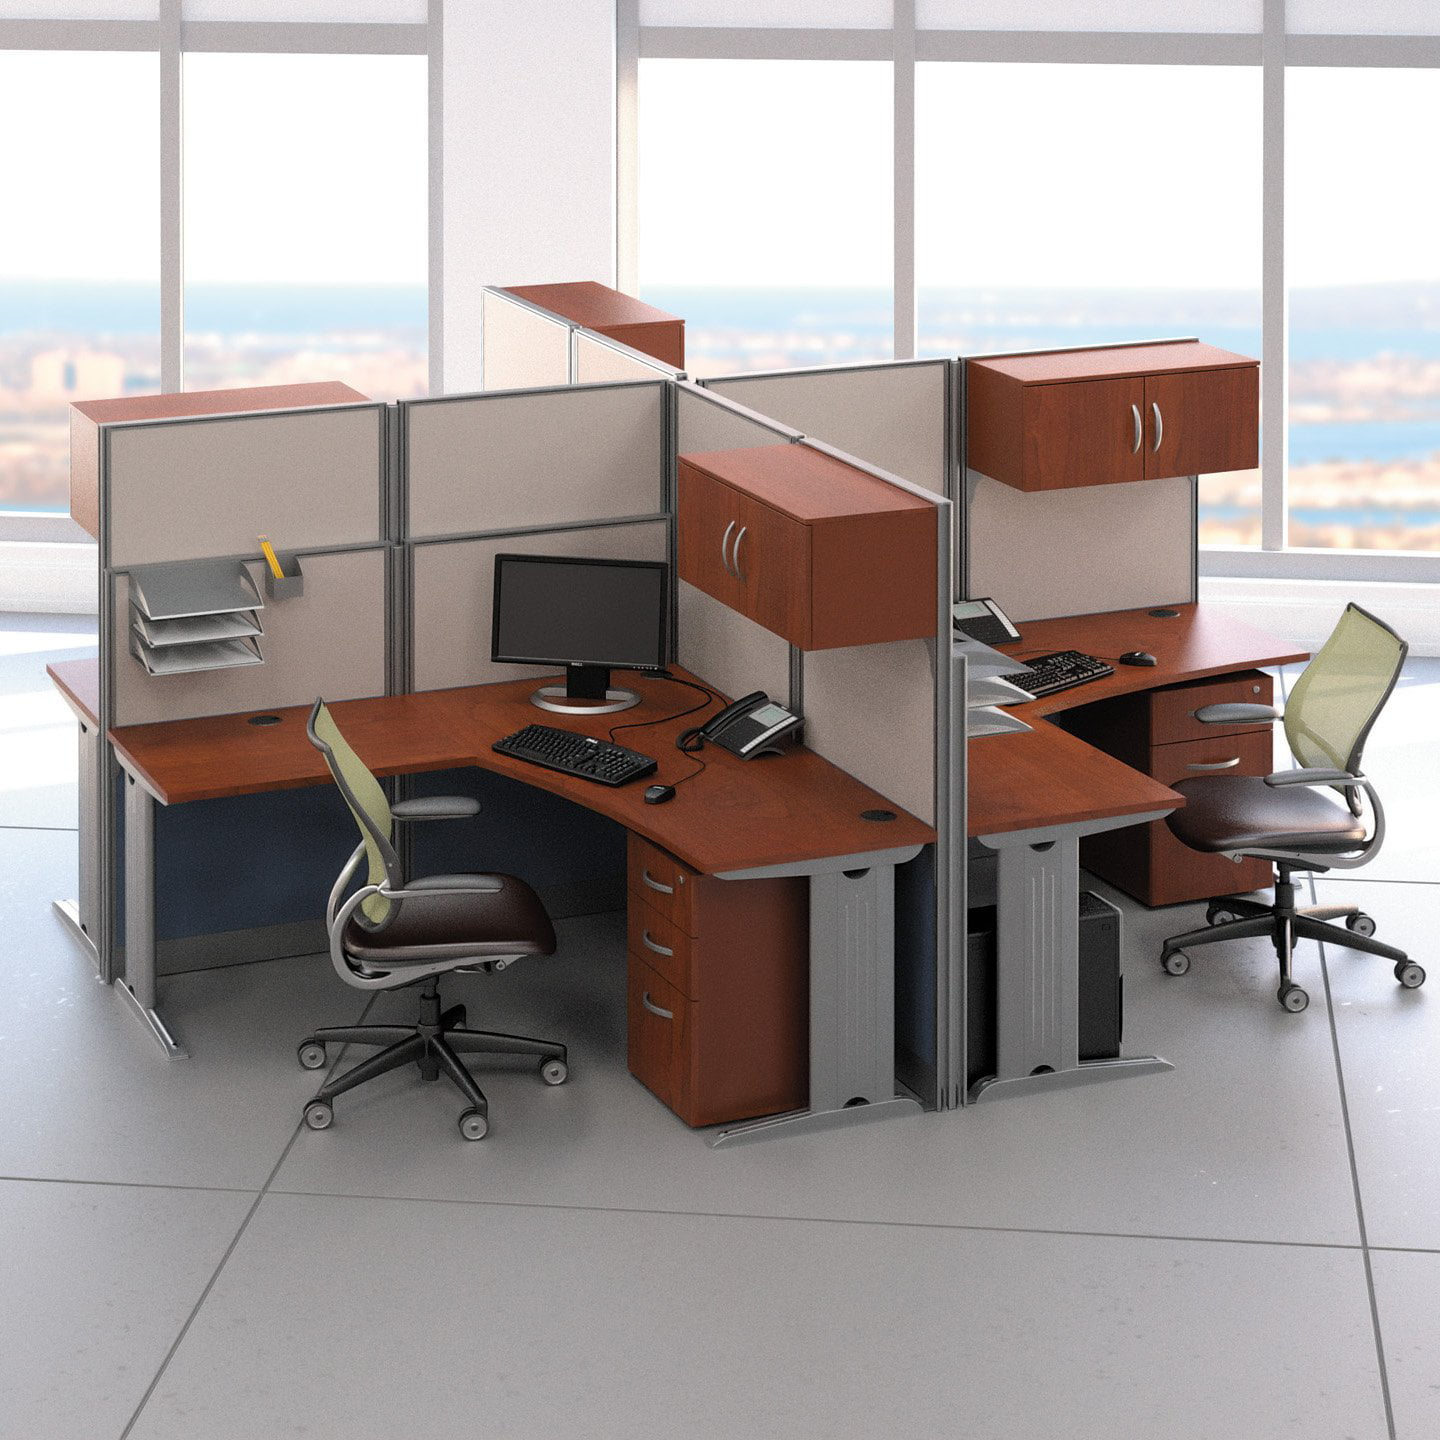 furniture com office overall configuration bush a professional amazon series dp business